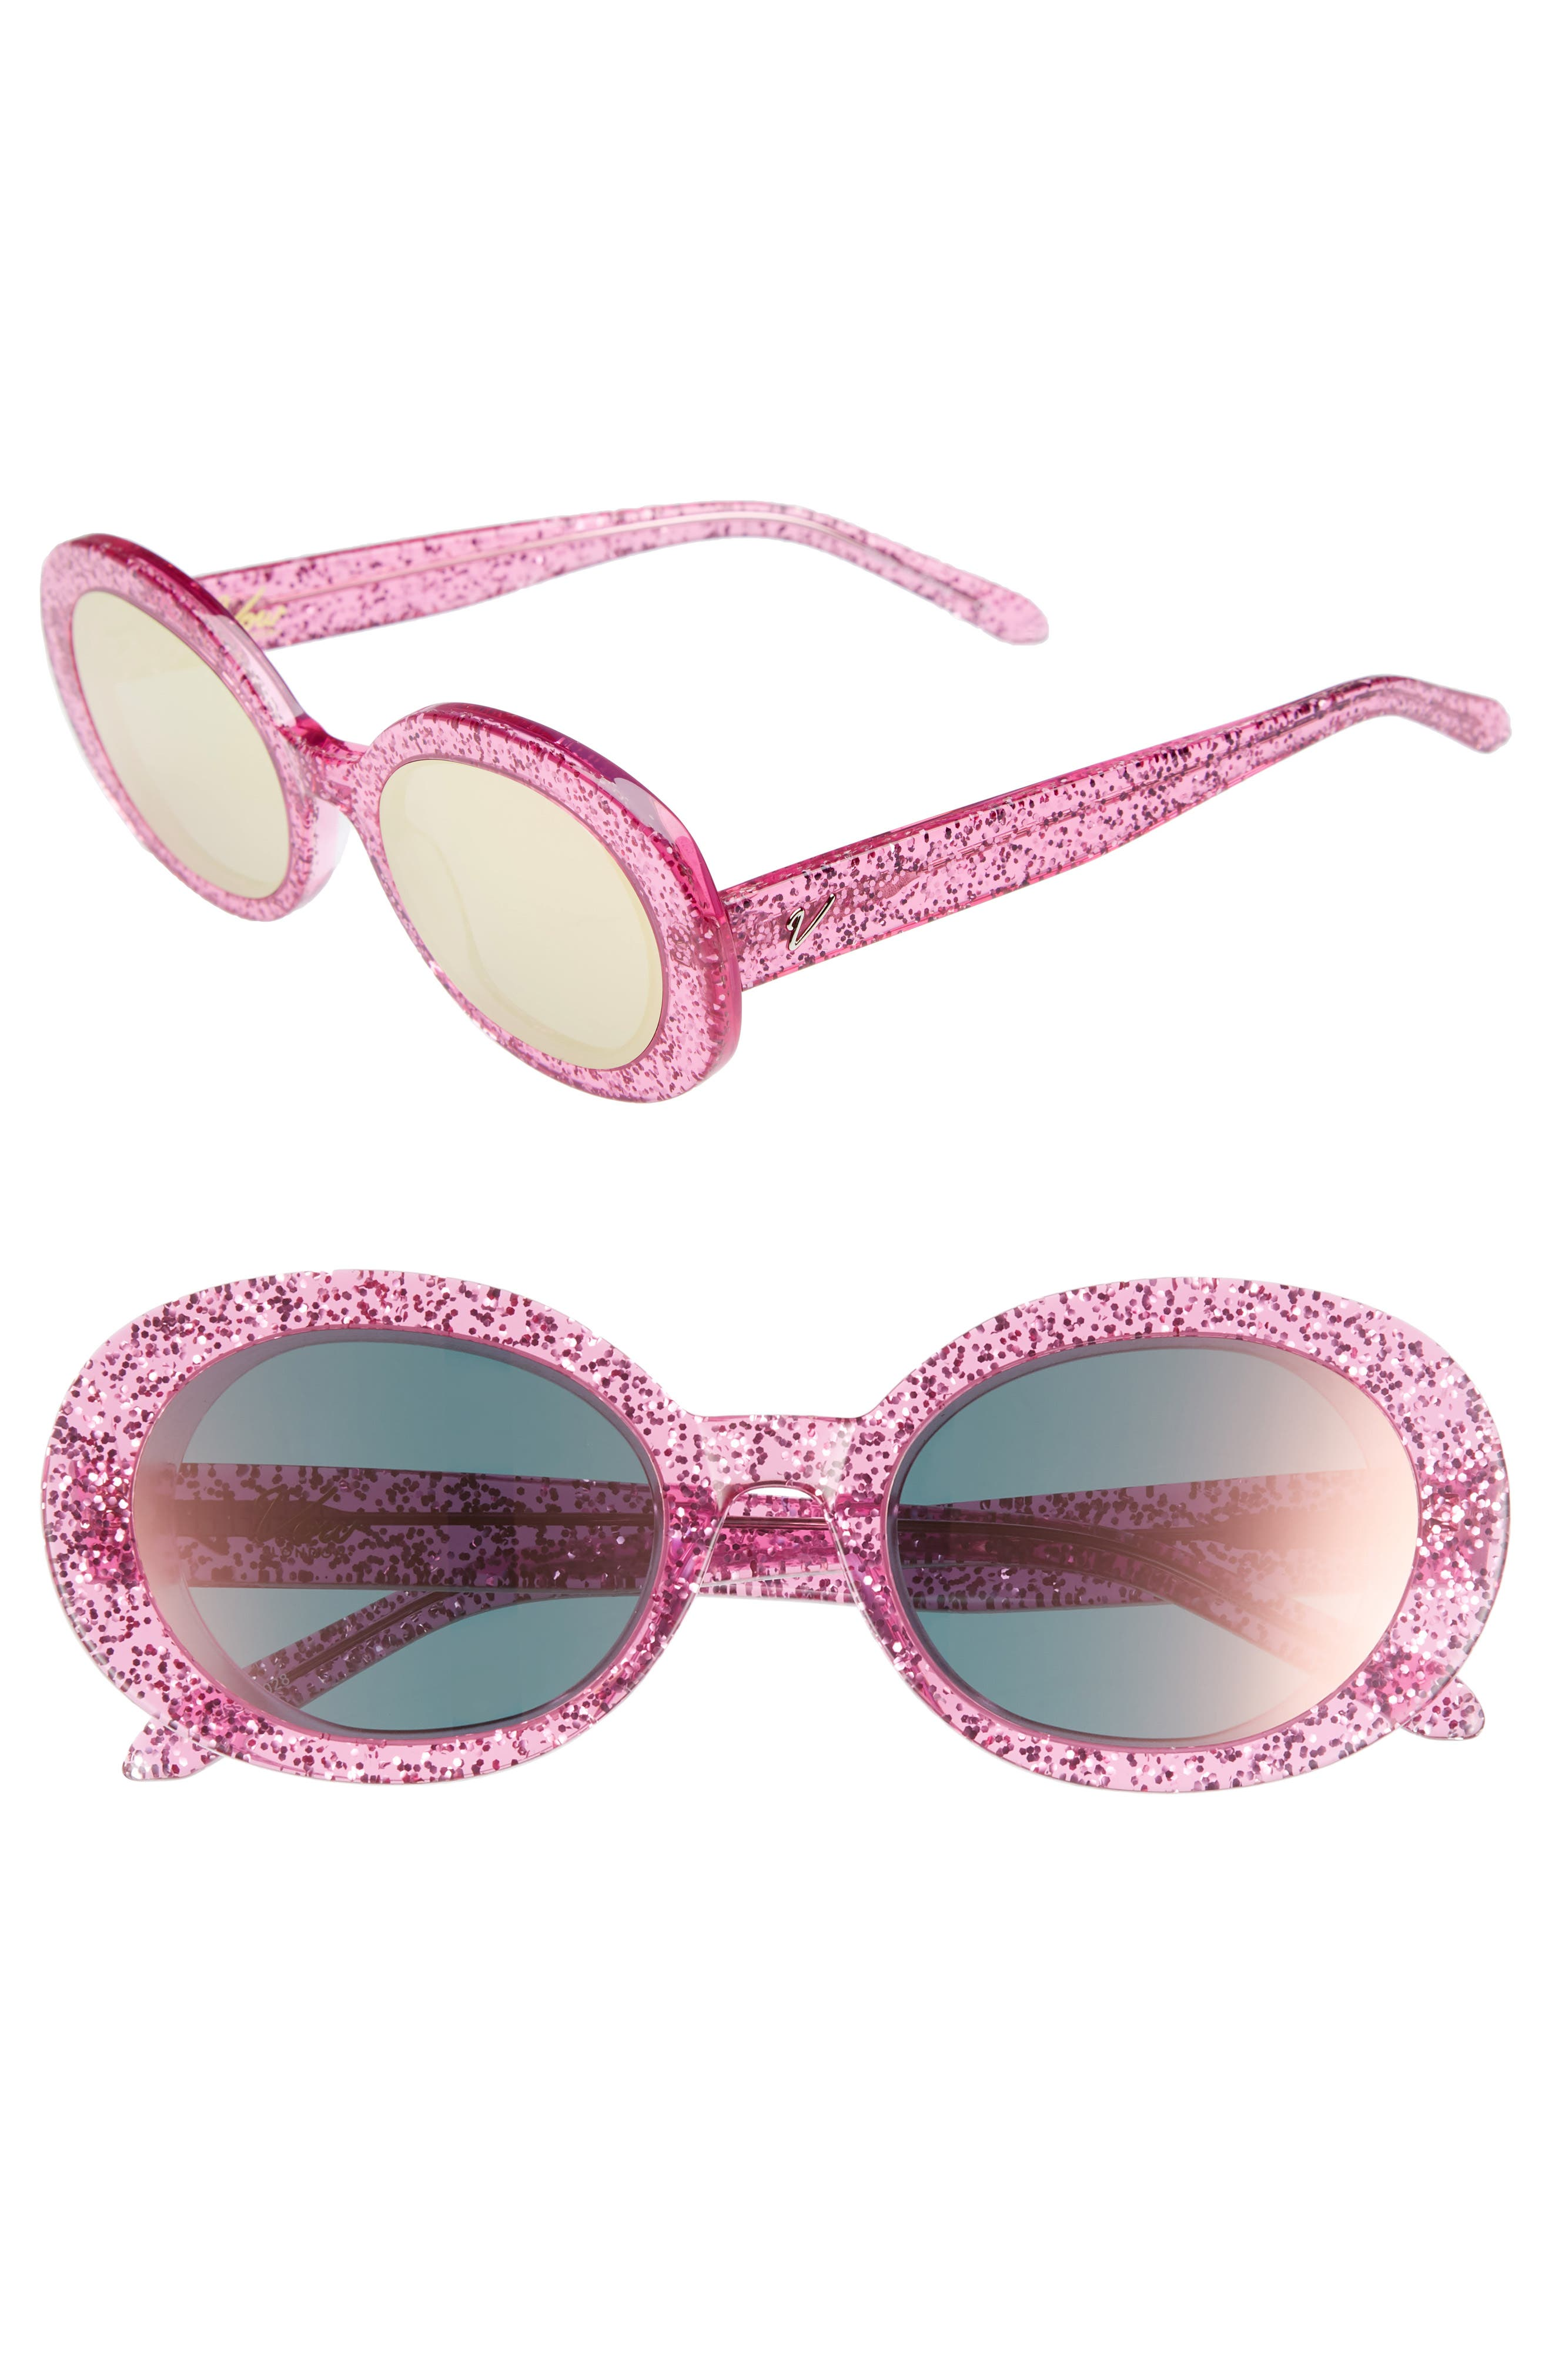 Selena 53mm Oval Sunglasses,                             Main thumbnail 1, color,                             Pink Glitter/ Pink Mirror